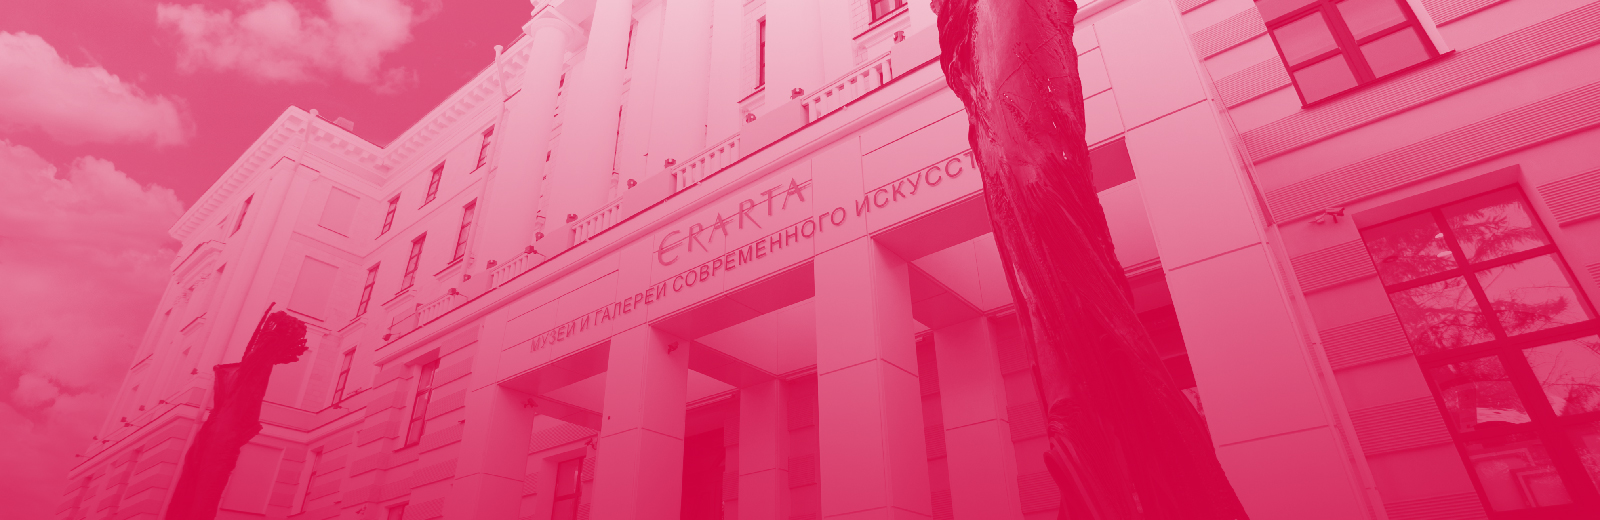 Слайдер для Russia at Erarta presents: exhibition Art Industry